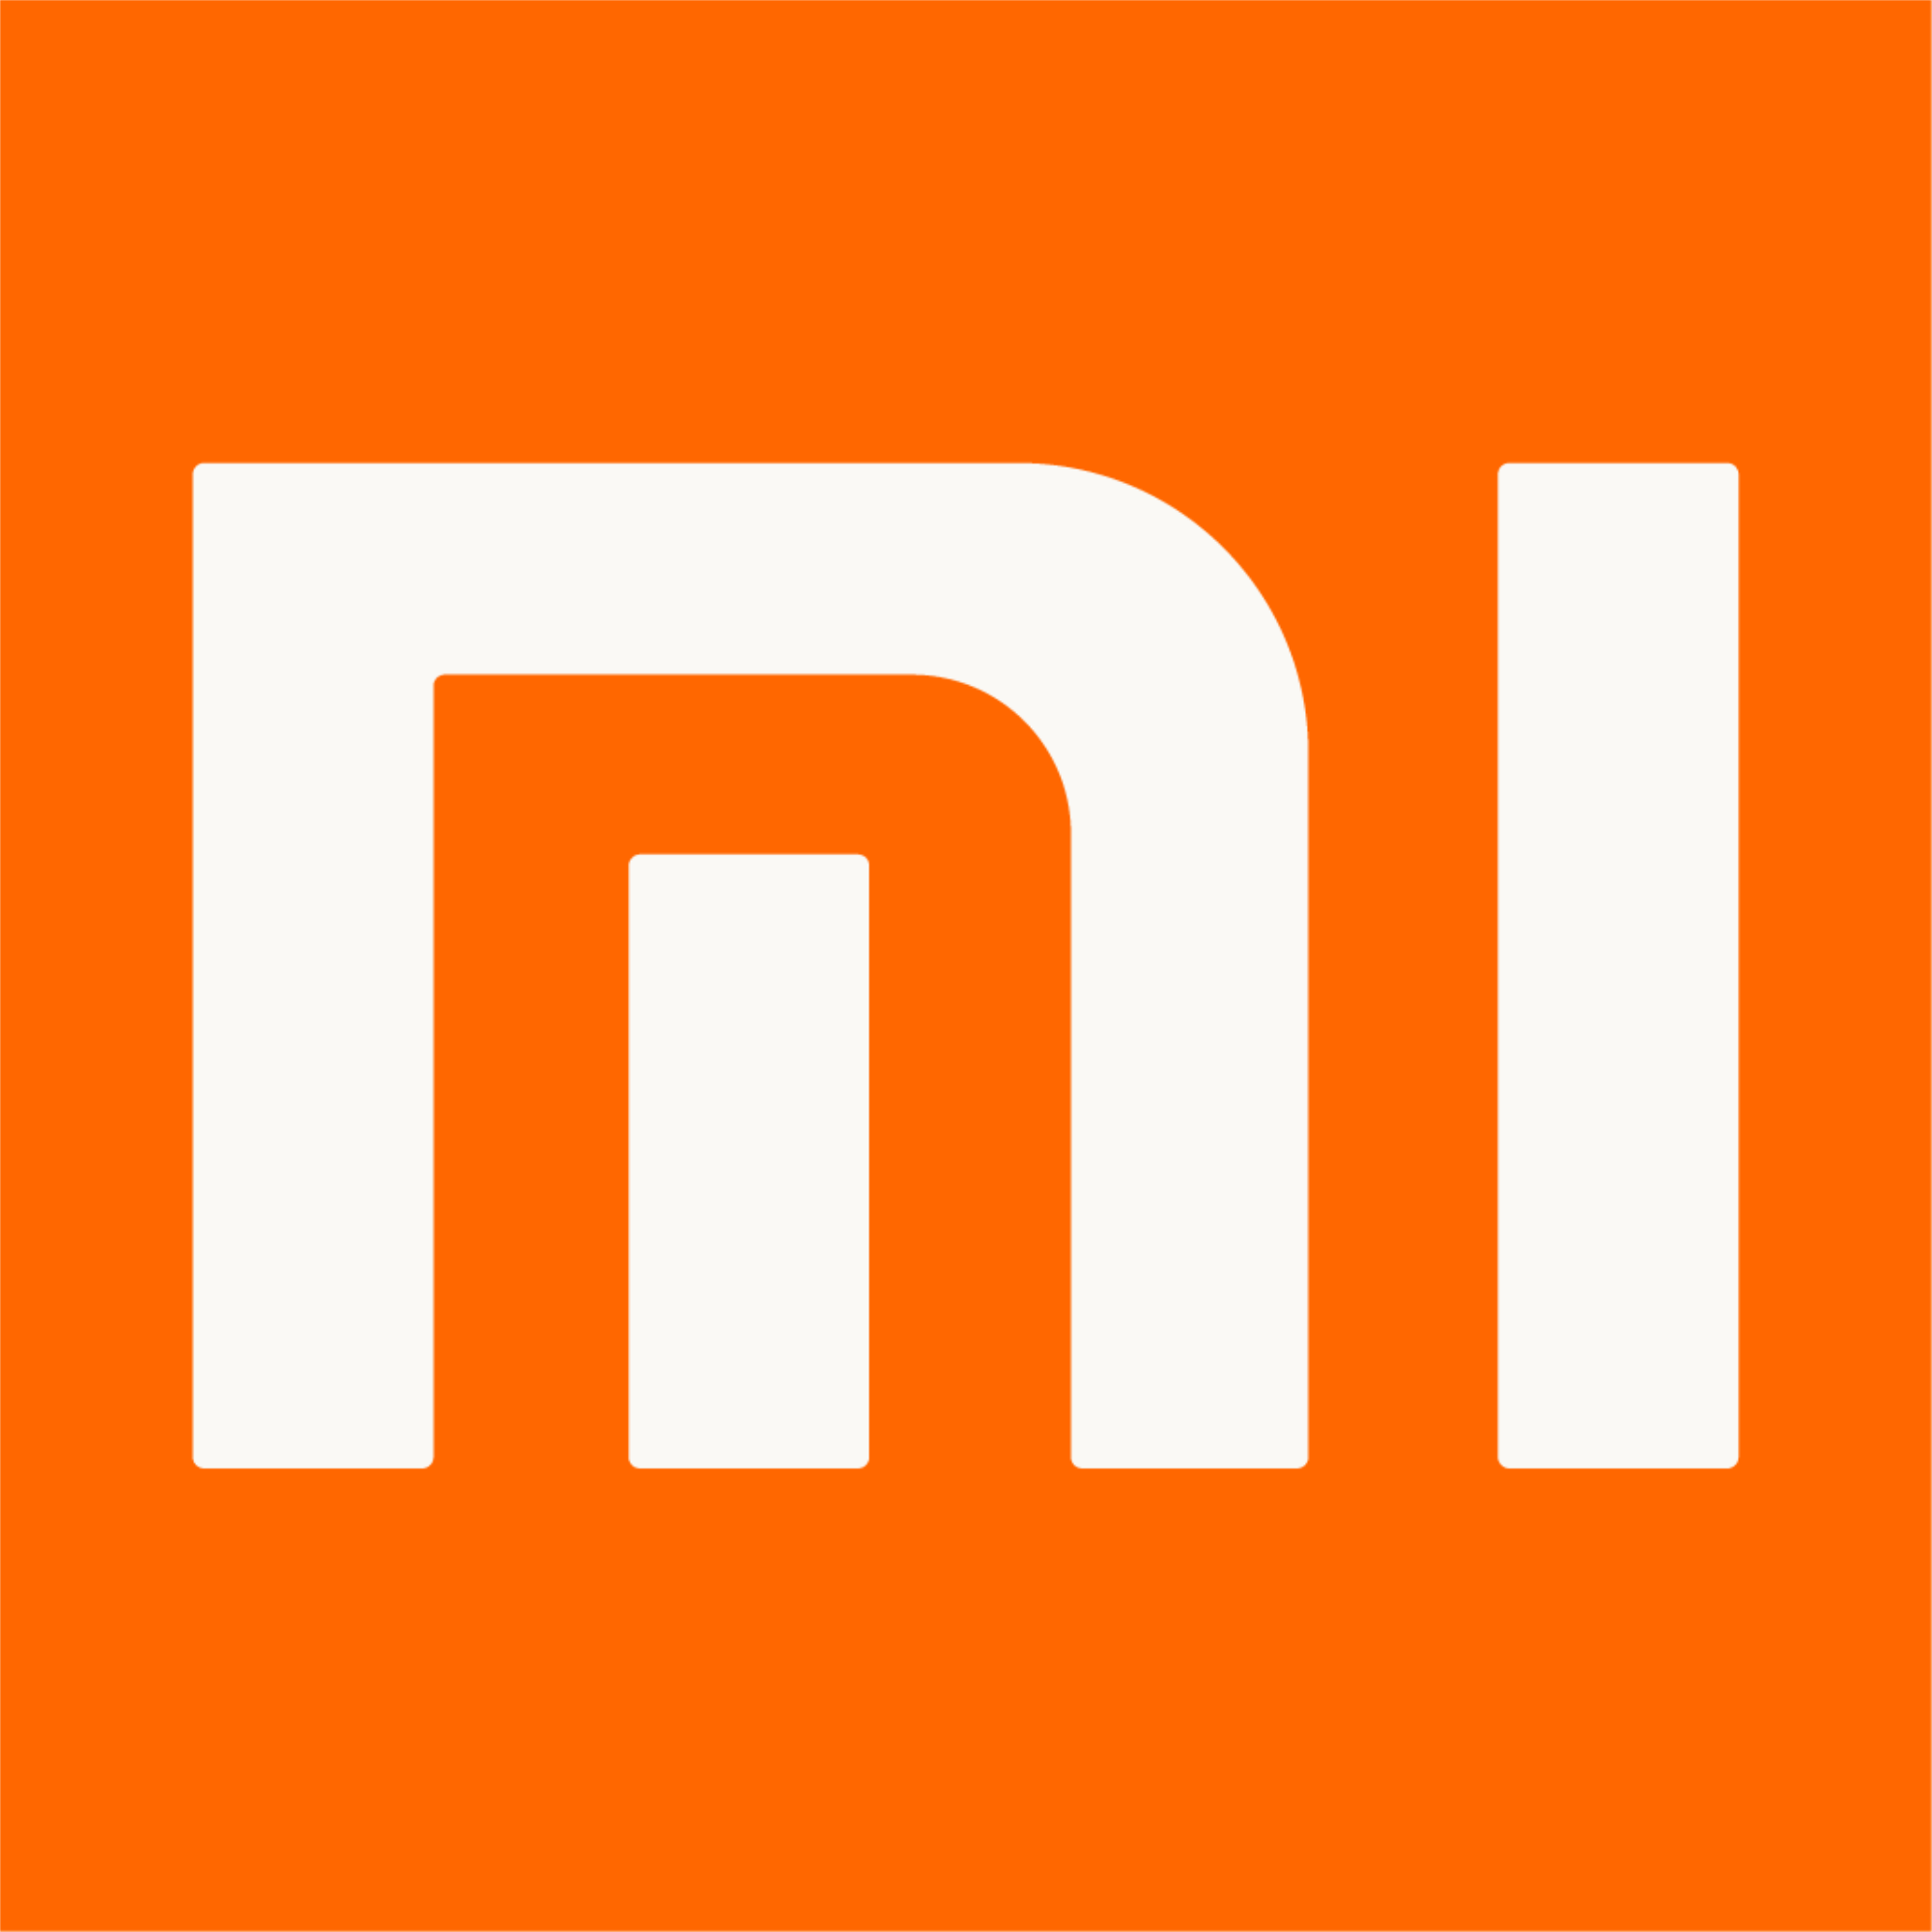 New SVG image - Xiaomi Logo PNG